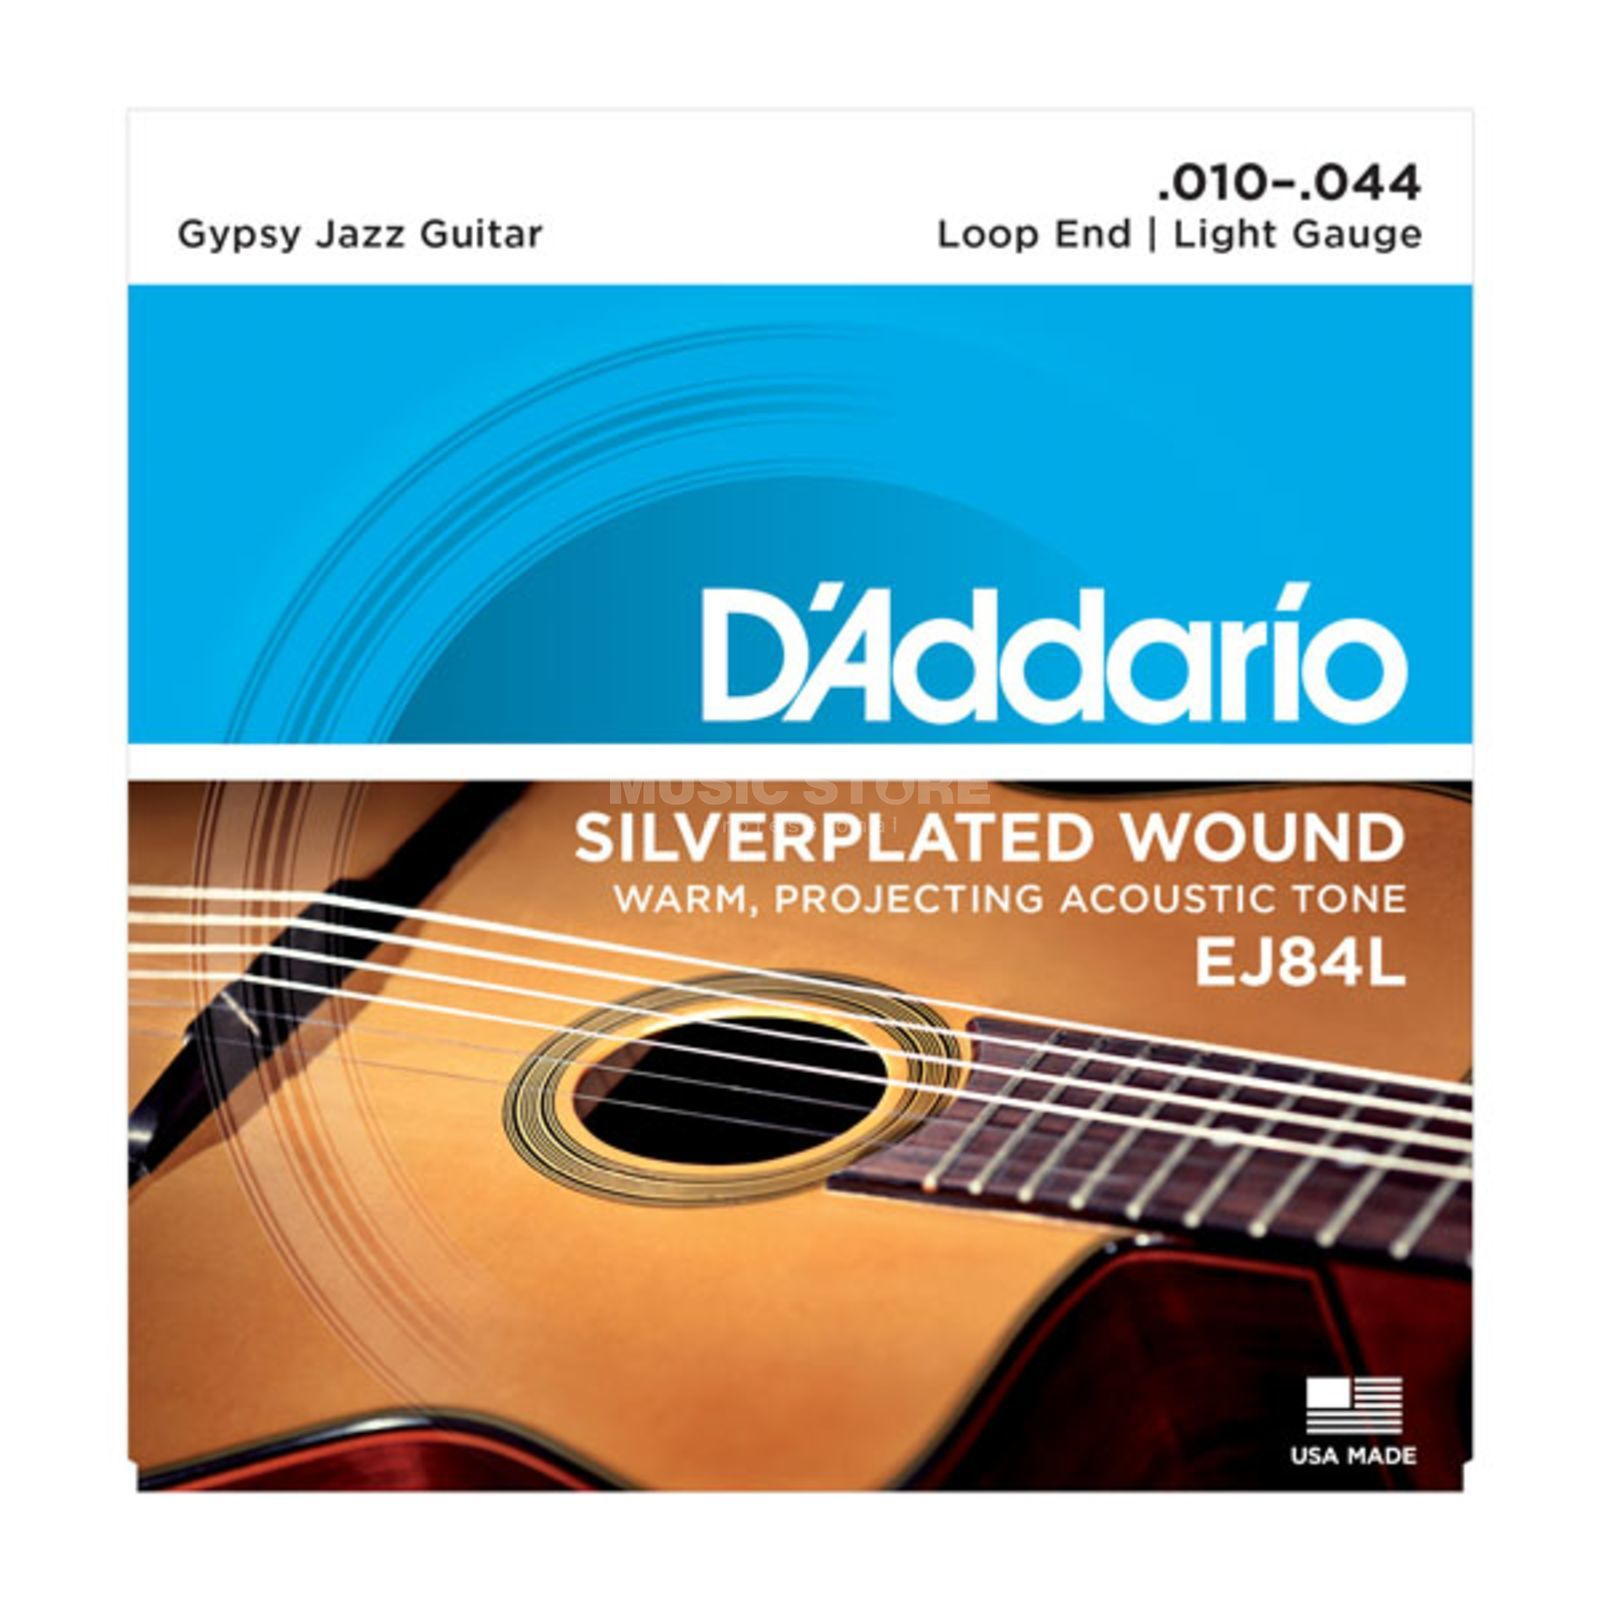 D'Addario Gypsy Jazz Saiten EJ84L 10-44 Loop End, Silverplated Wound Produktbillede